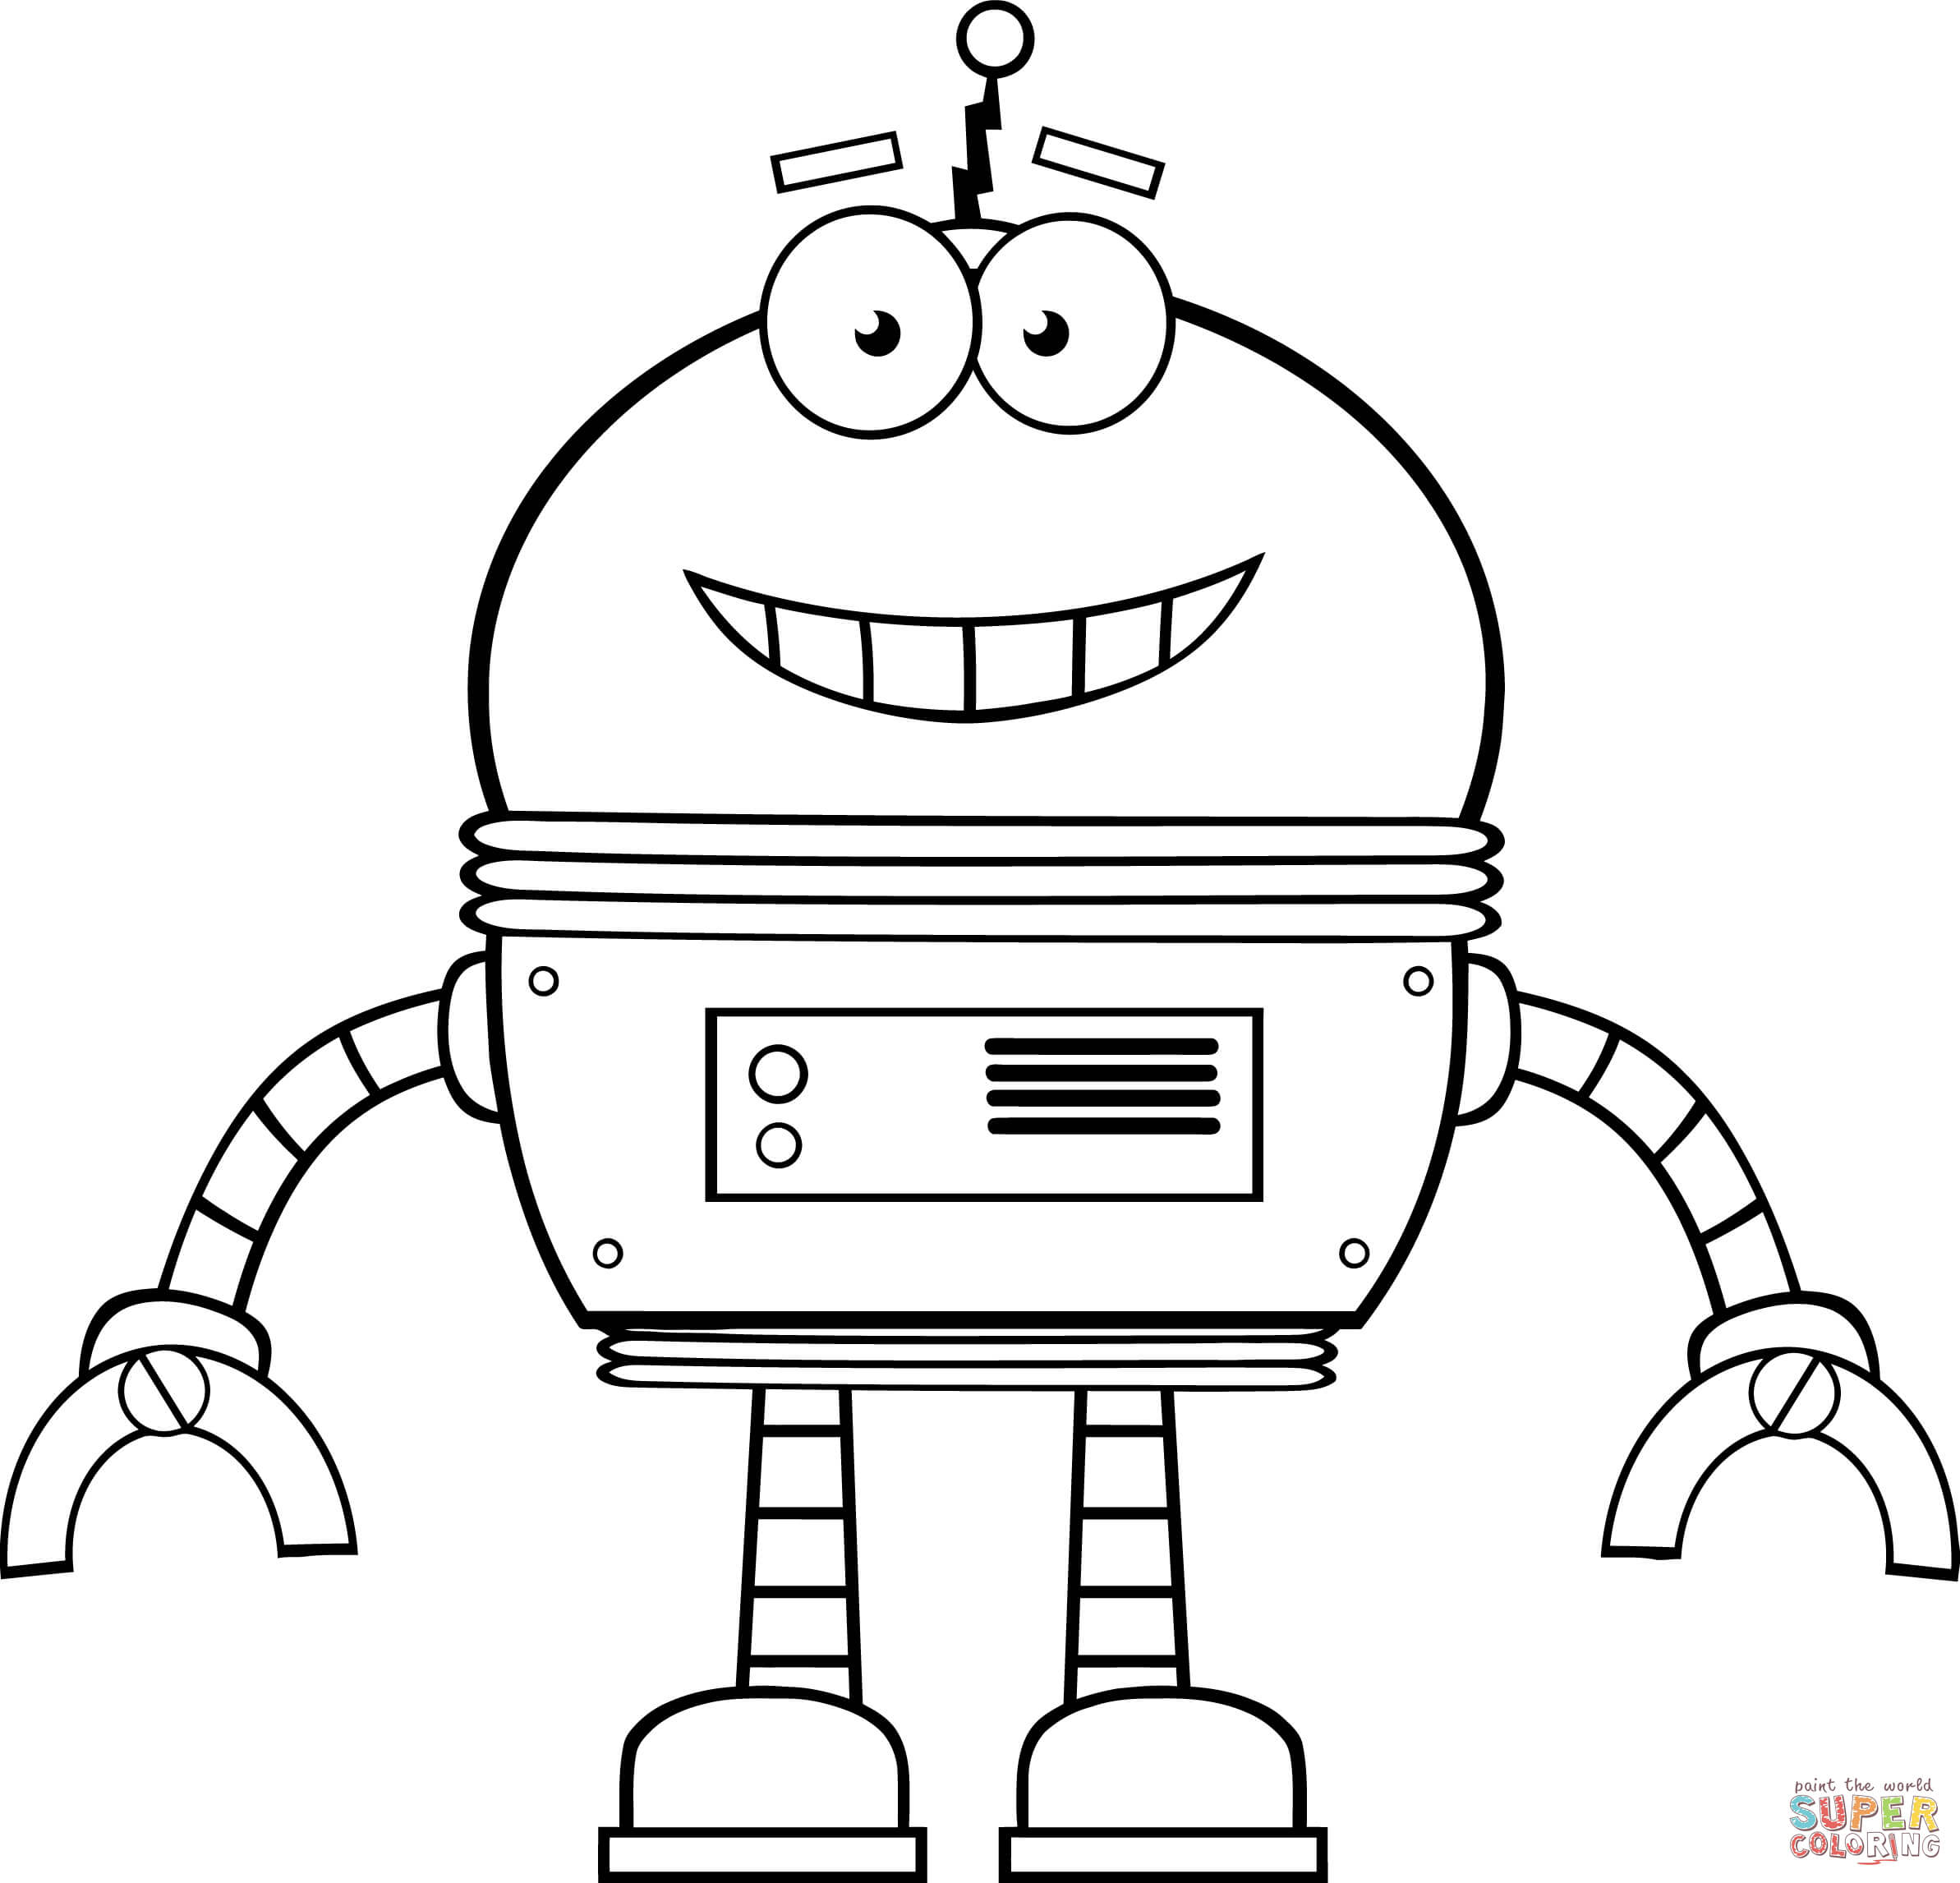 Smiling Robot Coloring Page Free Printable Coloring Pages